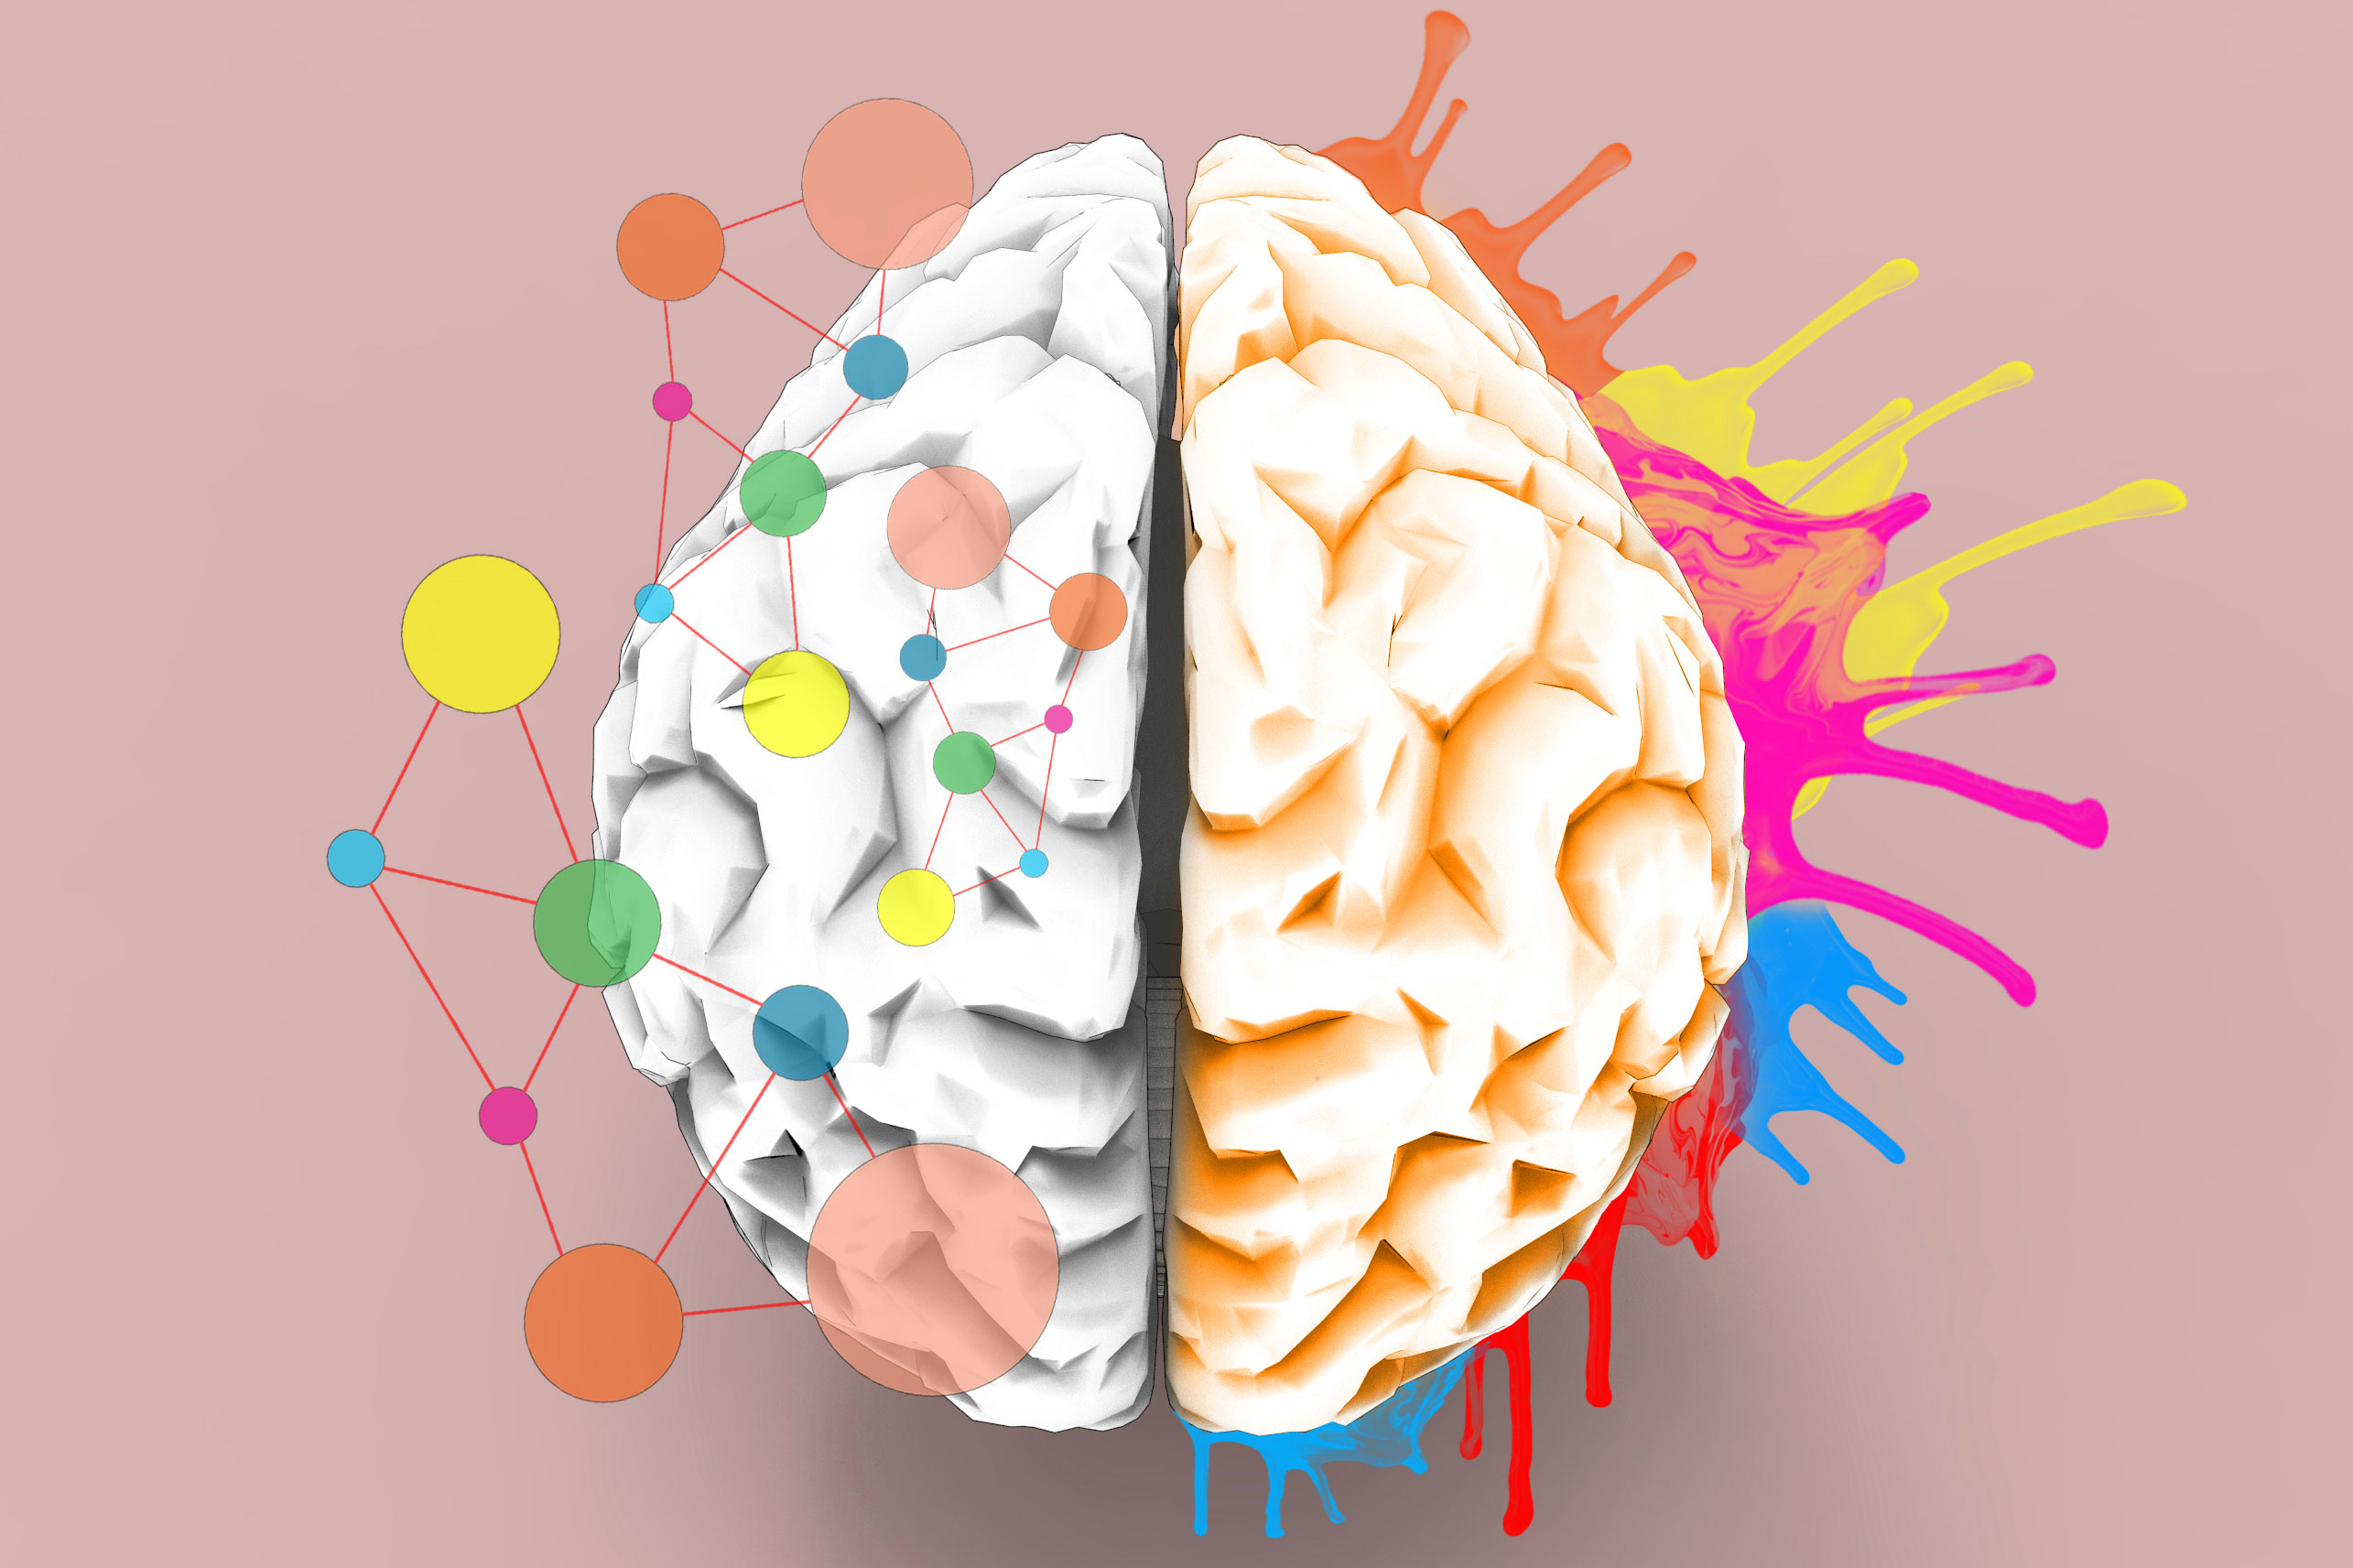 How neuroscience equips us to become better creators